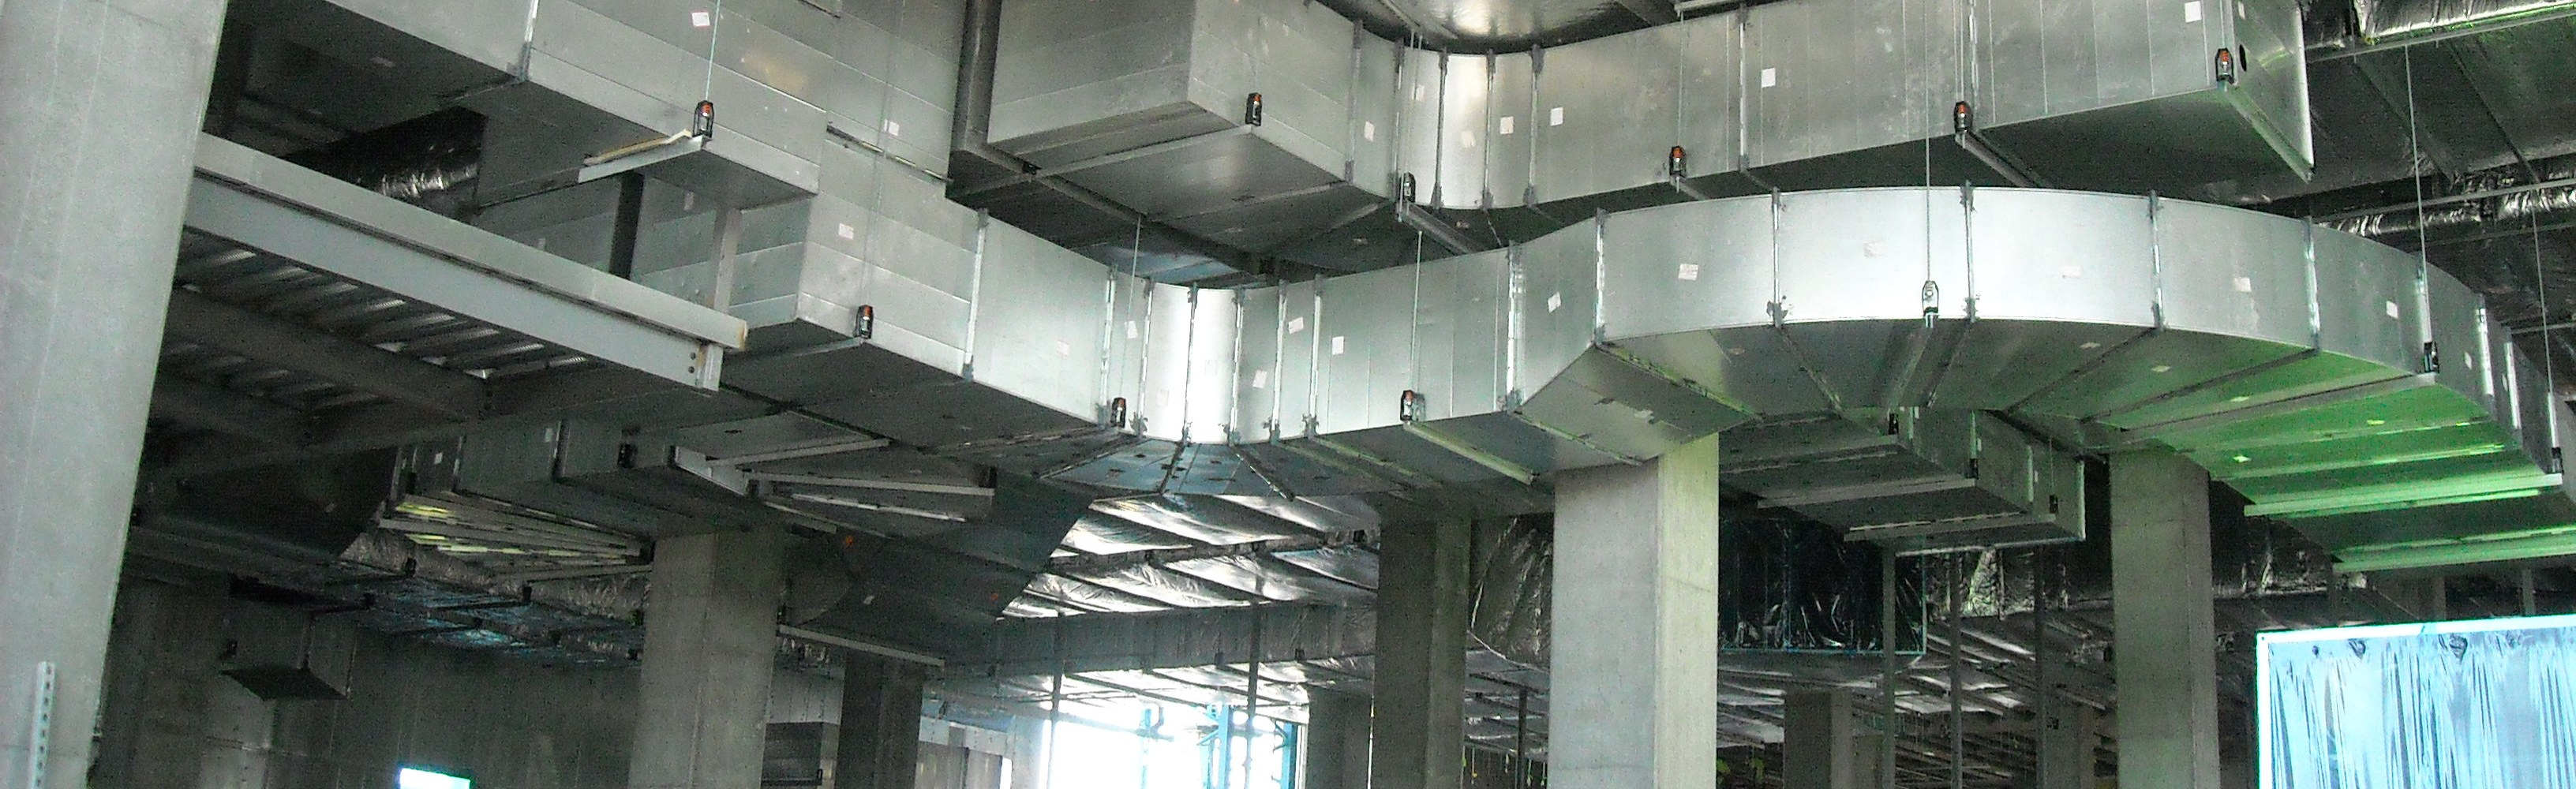 INDUSTRIAL COMMERCIAL SHEET METAL CONTRACTORS #487383